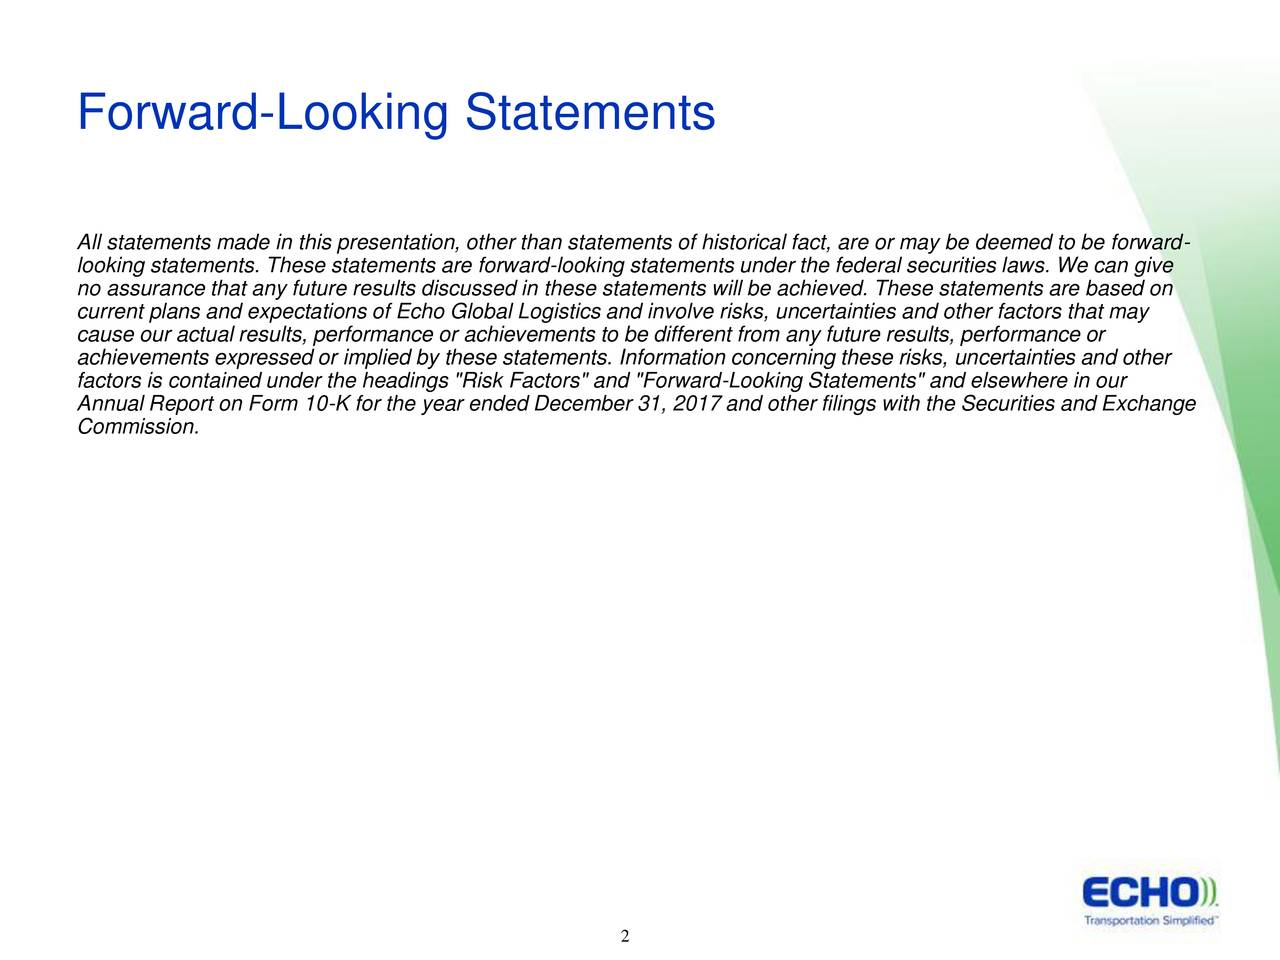 """All statements made in this presentation, other than statements of historical fact, are or may be deemed to be forward- looking statements. These statements are forward-looking statements under the federal securities laws. We can give no assurance that any future results discussed in these statements will be achieved. These statements are based on current plans and expectations of Echo Global Logistics and involve risks, uncertainties and other factors that may cause our actual results, performance or achievements to be different from any future results, performance or achievements expressed or implied by these statements. Information concerning these risks, uncertainties and other factors is contained under the headings """"Risk Factors"""" and """"Forward-Looking Statements"""" and elsewhere in our Annual Report on Form 10-K for the year ended December 31, 2017 and other filings with the Securities and Exchange Commission. 2 2"""